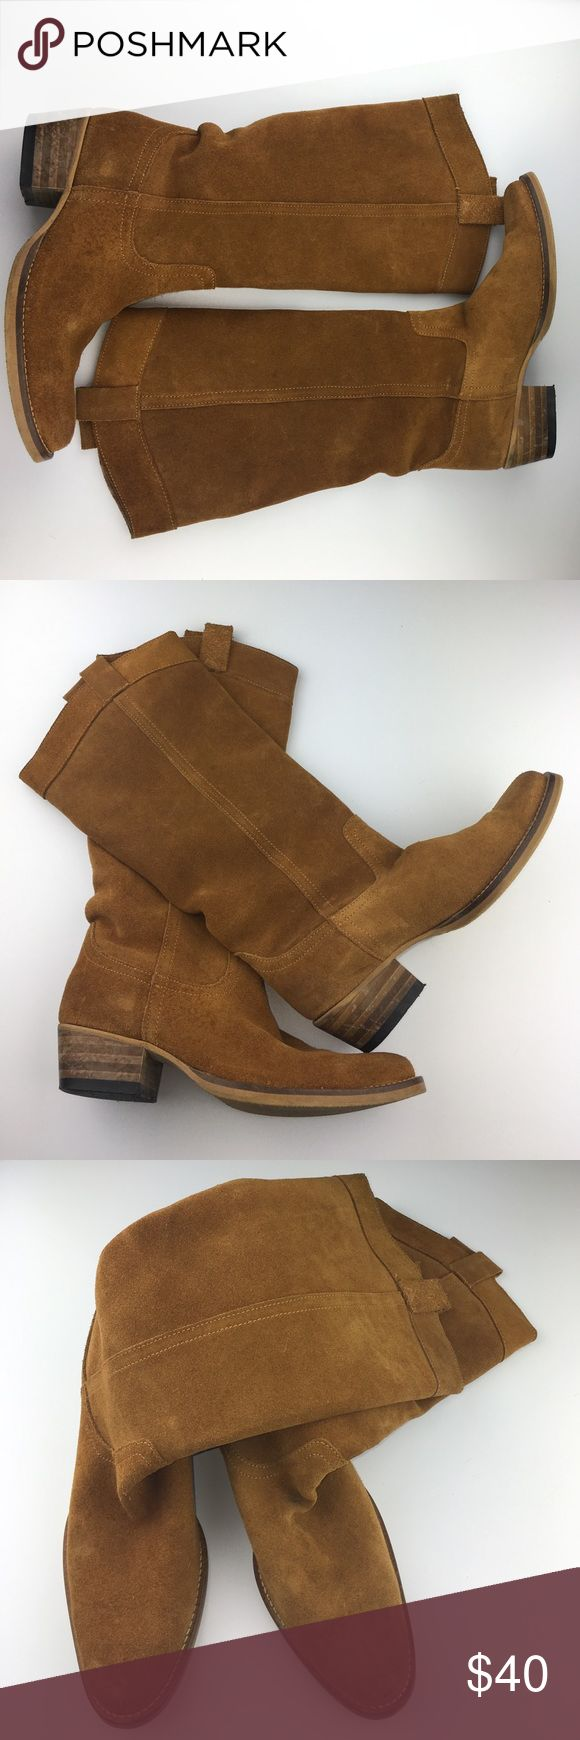 "Tan suede size 39 boots Tan suede size 39 boots. European size 9 but more of an 8. Very soft and comfy. Made in Portugal . Brand, ""Sommerkind"". Soles are rubber. Stitching on boot are tan. Stitching around sole is beige. Heel is 1 & 1/2"" sommerkind Shoes Heeled Boots"